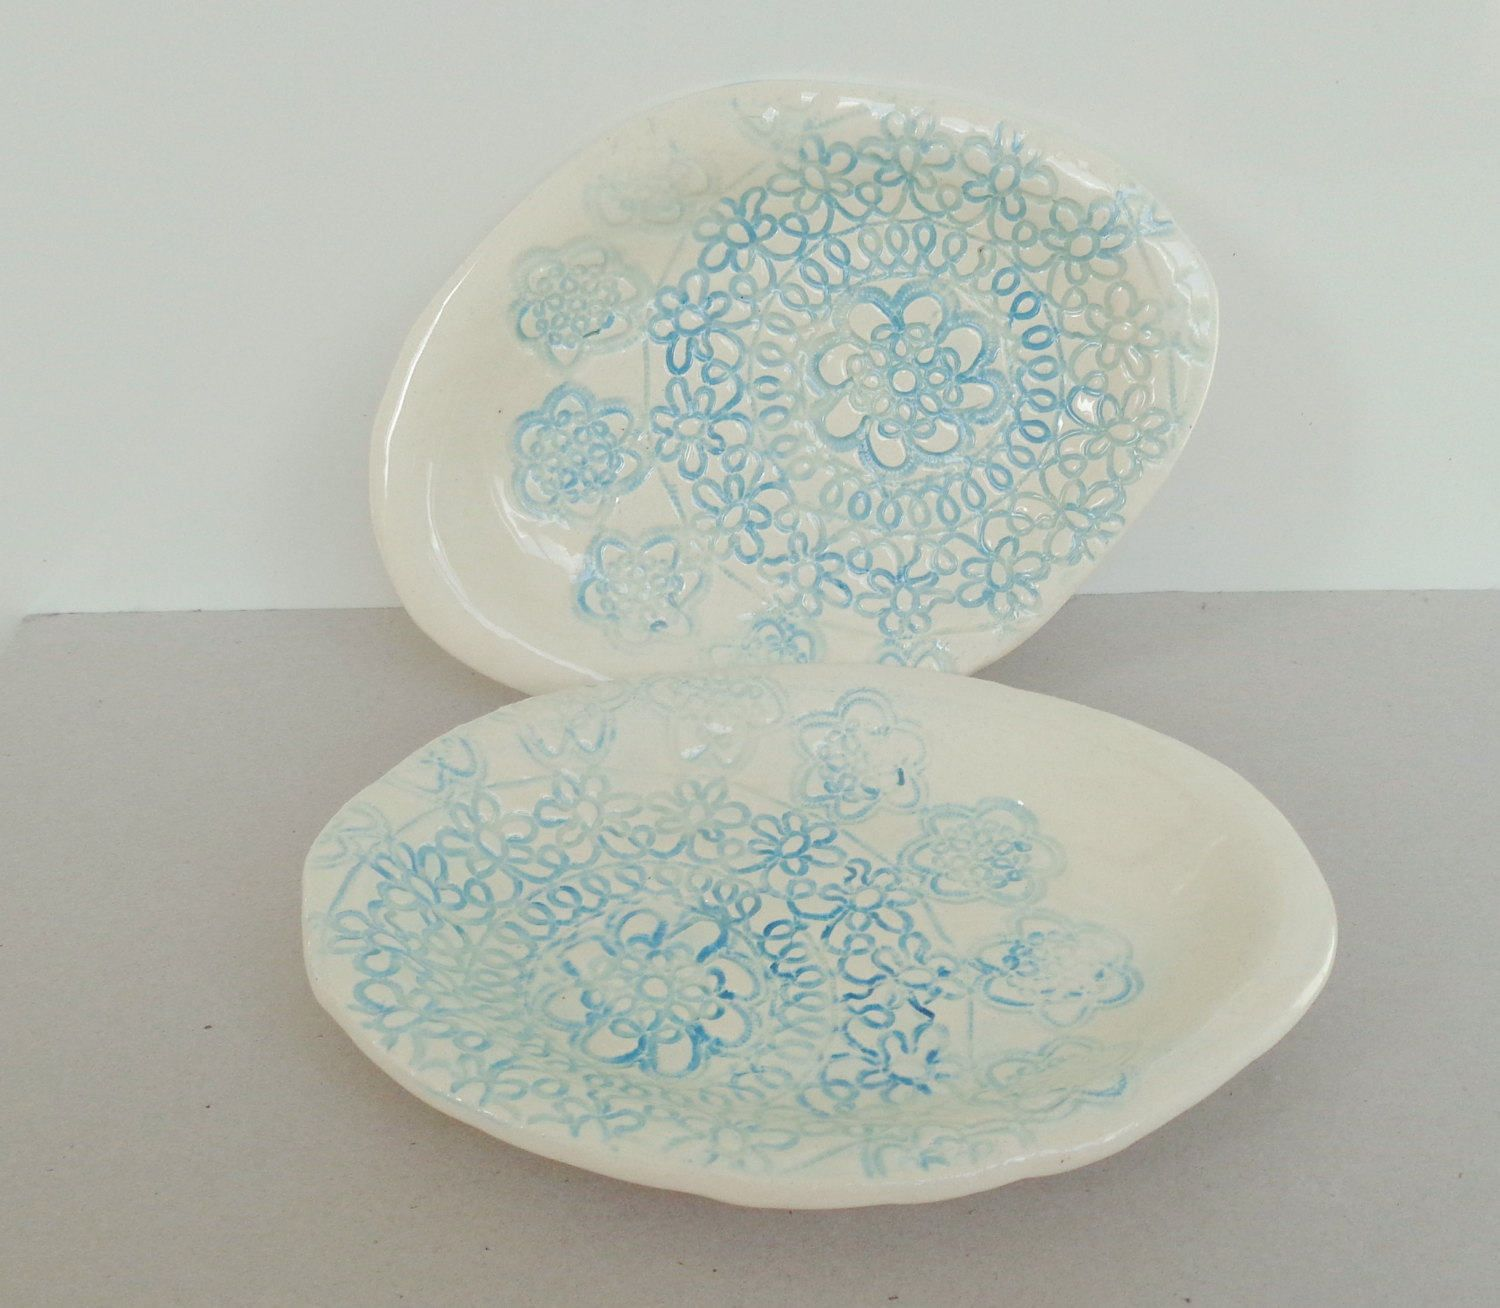 White oval lace textured ceramic plate, stoneware platter